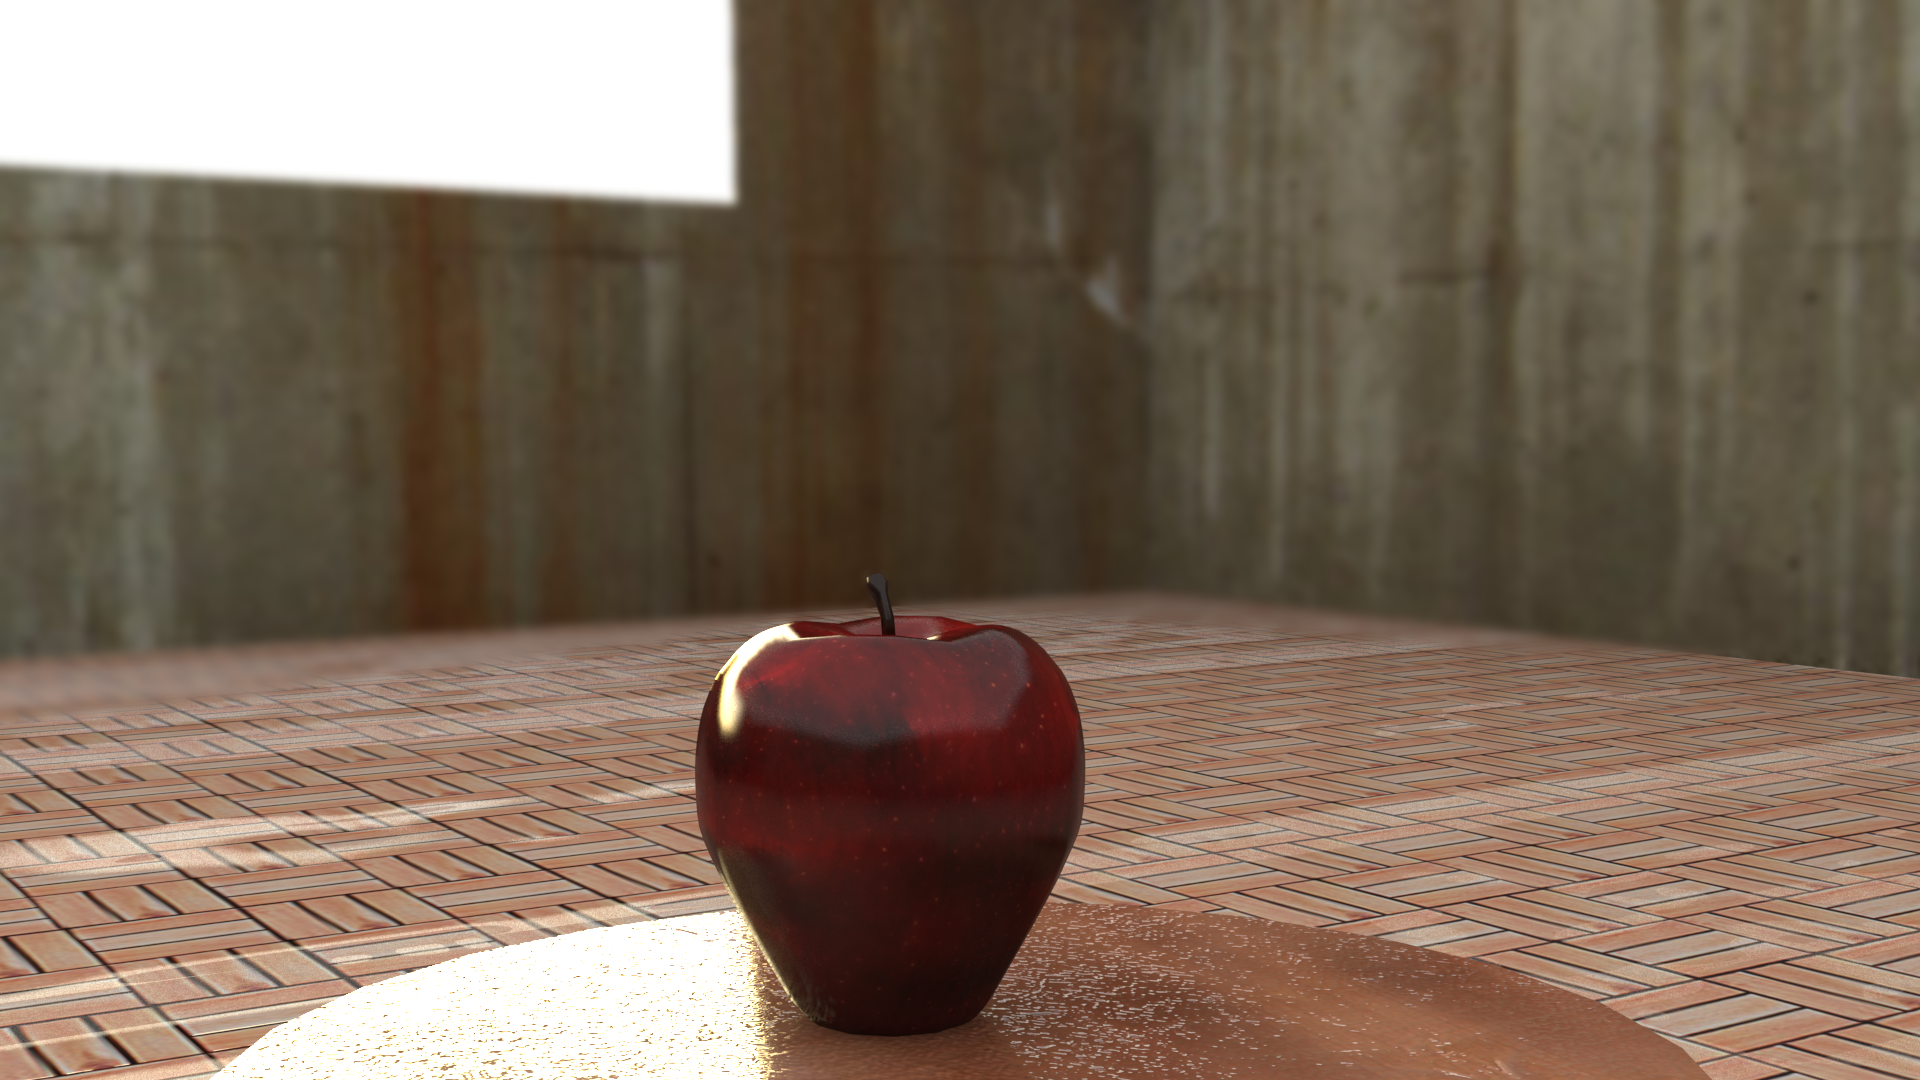 Apple  Another one of my alphabet renders. I created my own showcase backdrop because I found 'Max's a little bland. Decided I wanted to go with some Neo-Brutalist walls.